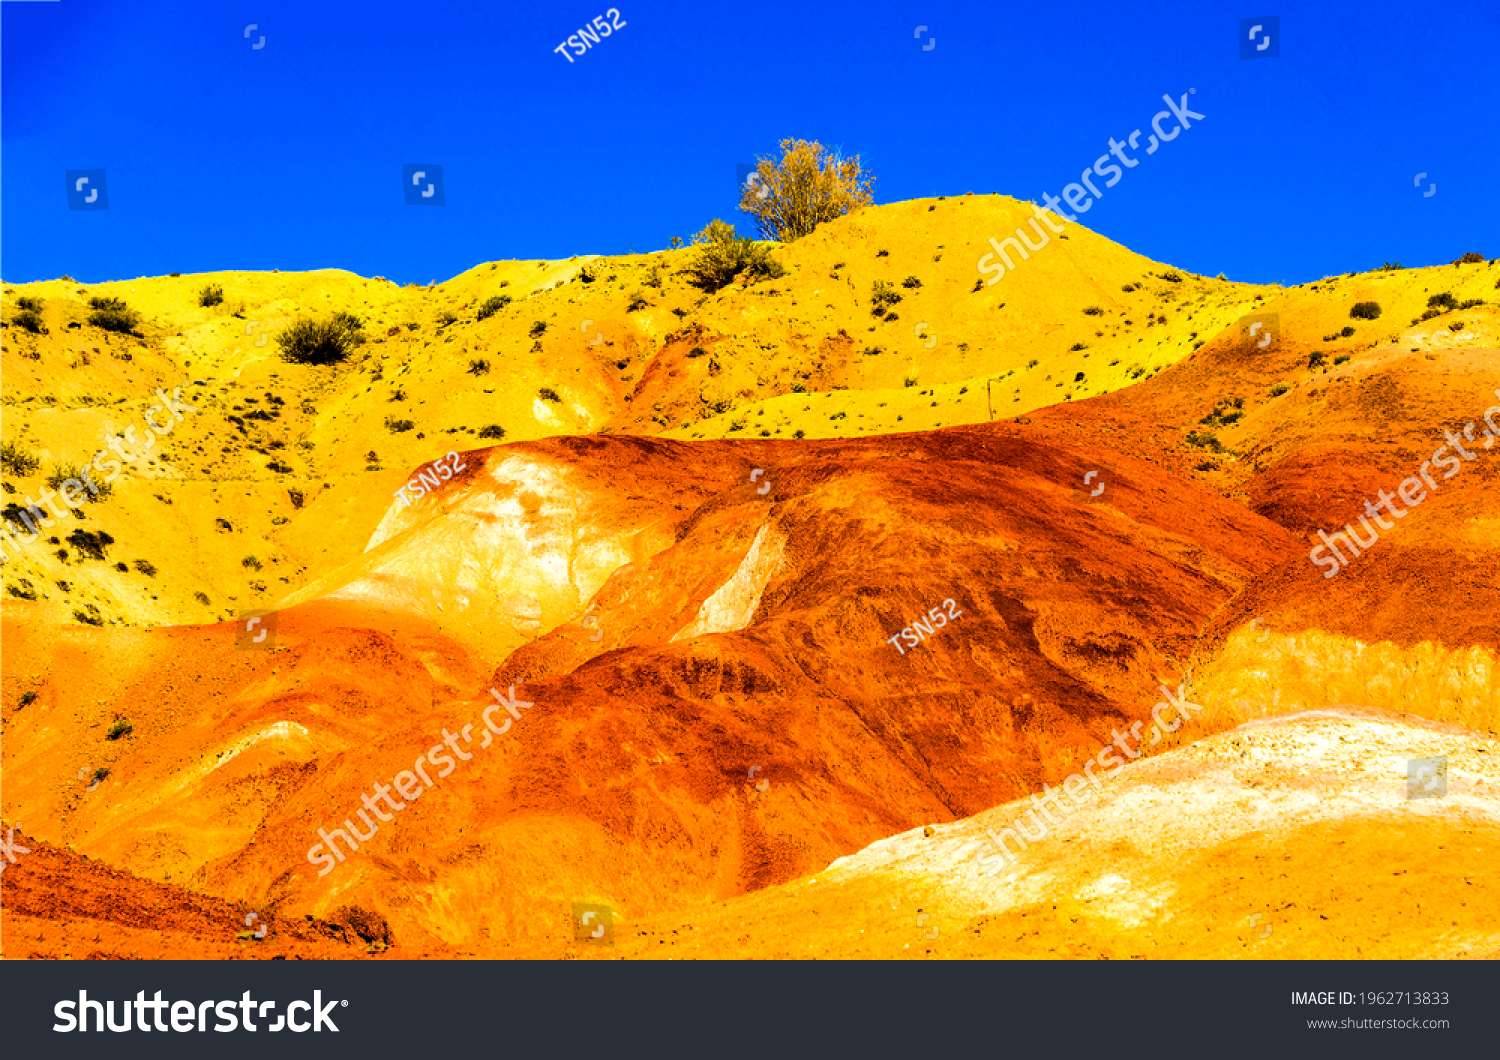 Sand hill in the middle of the desert. Orange yellow sand hill on clear blue sky background. Sand hill on blue sky background. Sand hill view #1962713833